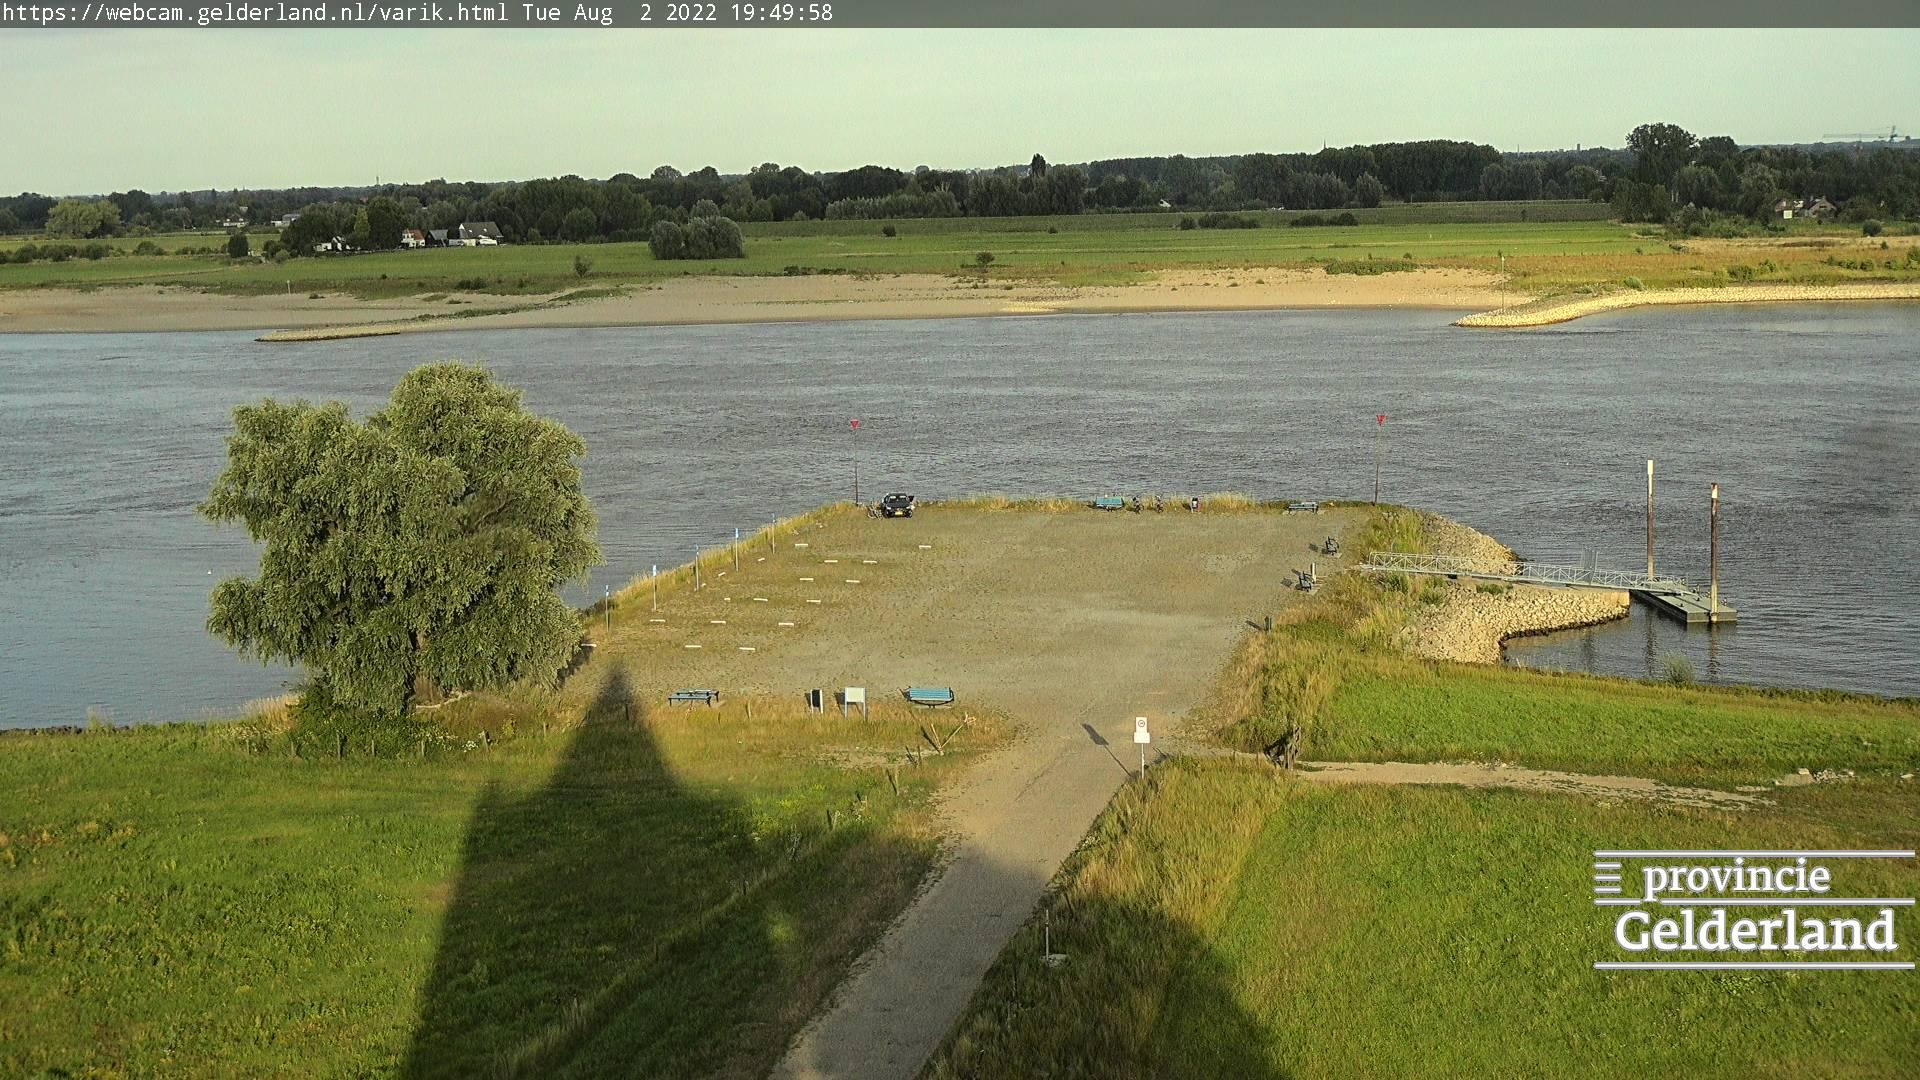 Webcam Varik: Waalpleisterplaats de Bol